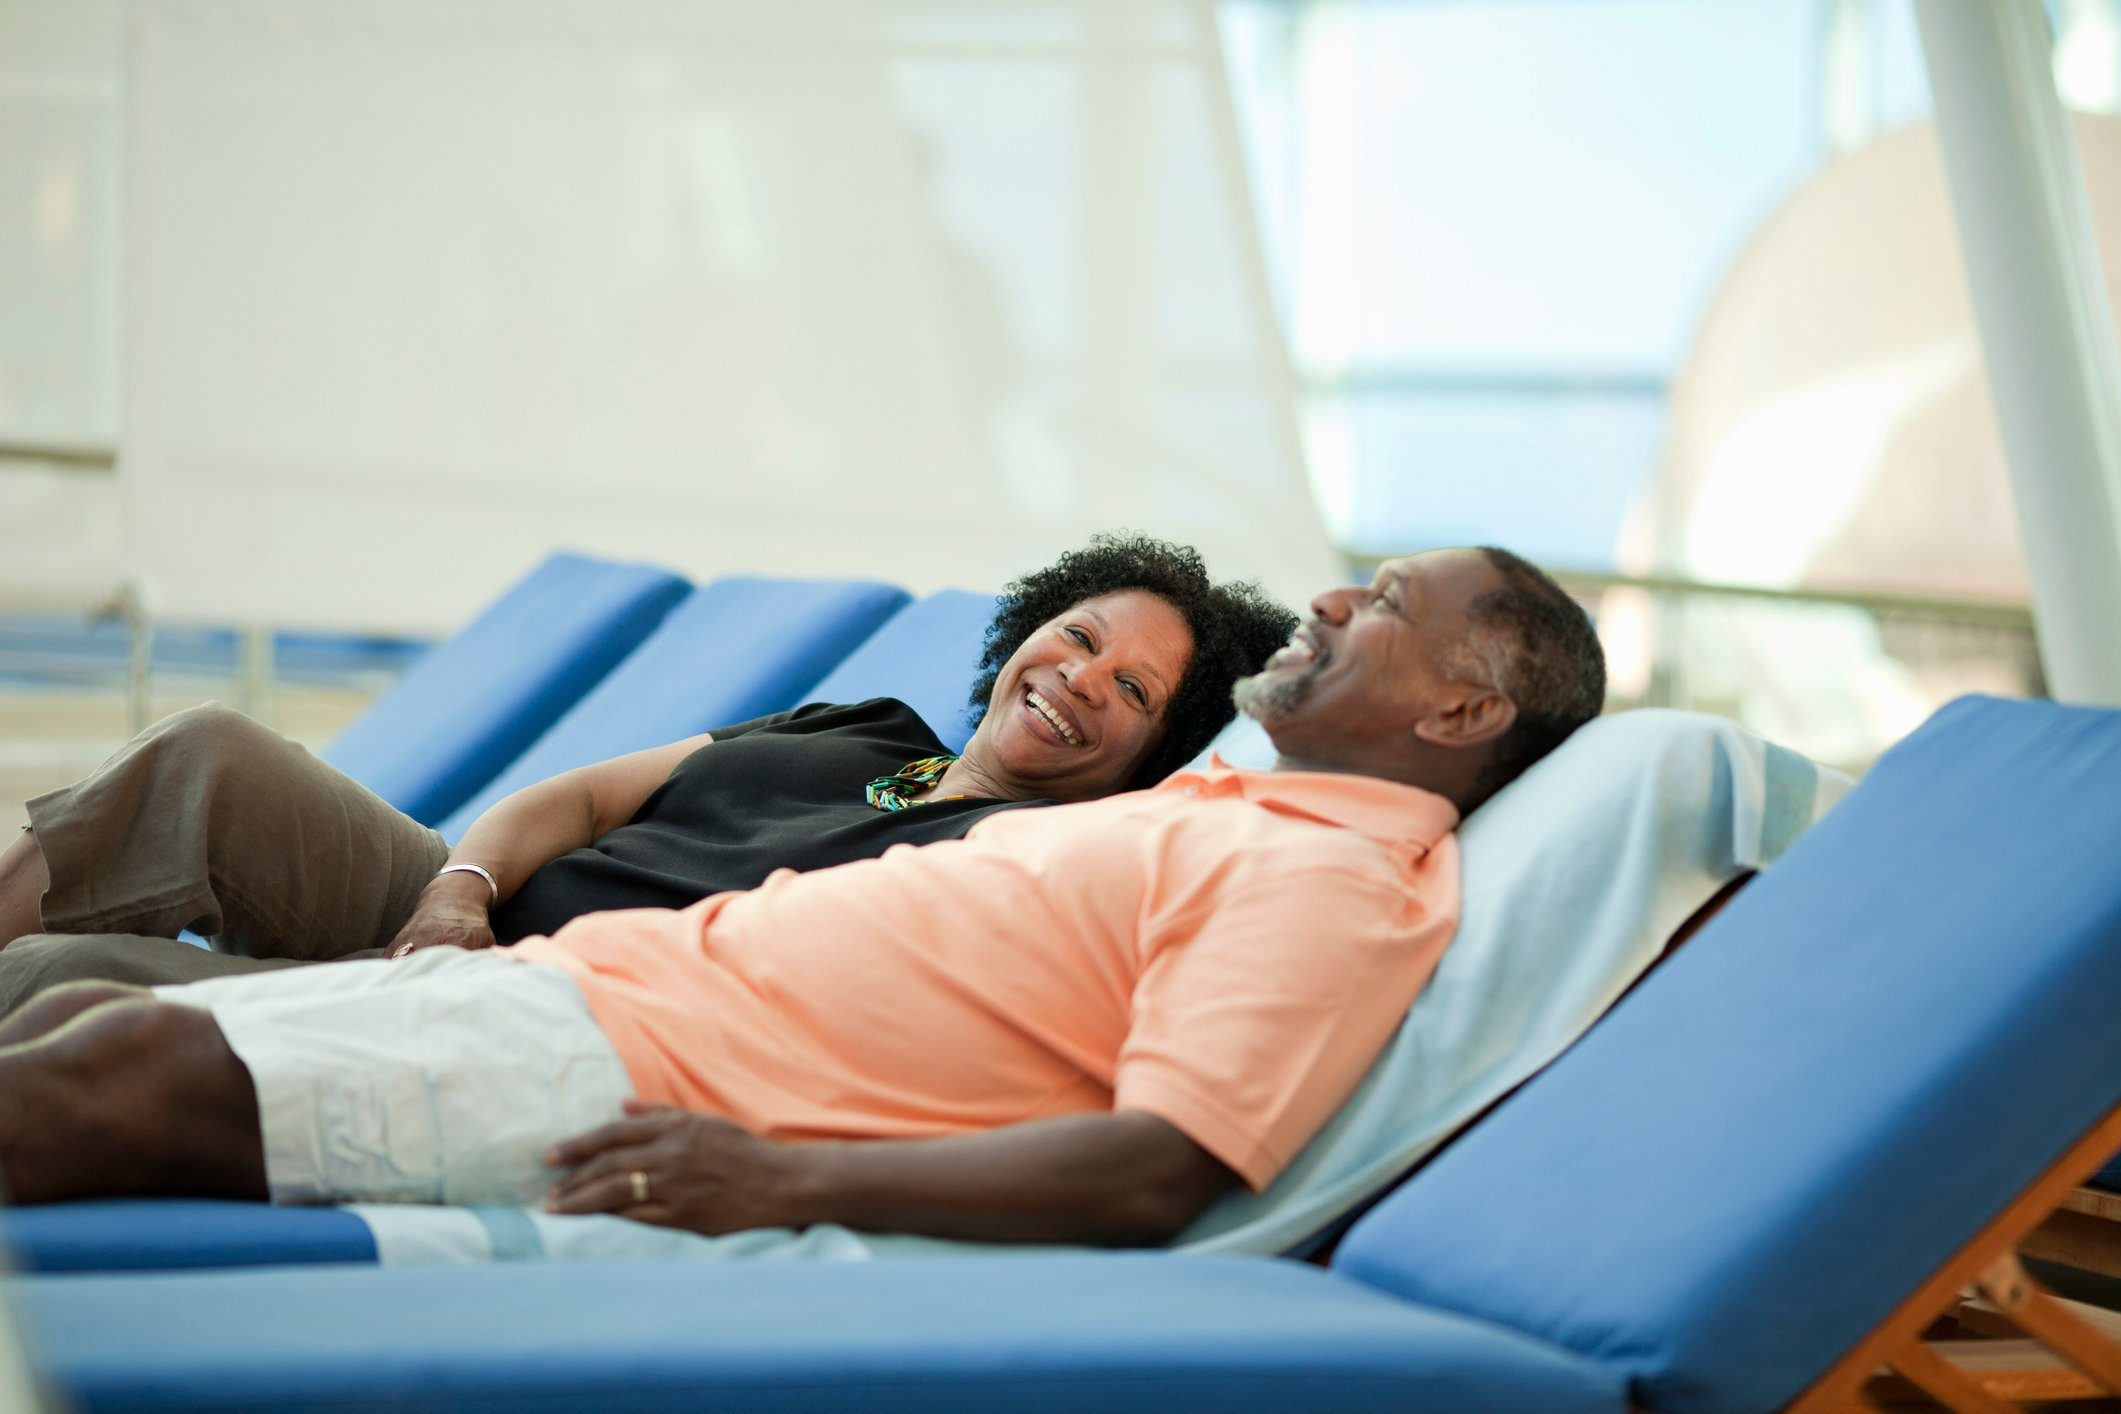 Mature couple on lounge chair on cruise ship